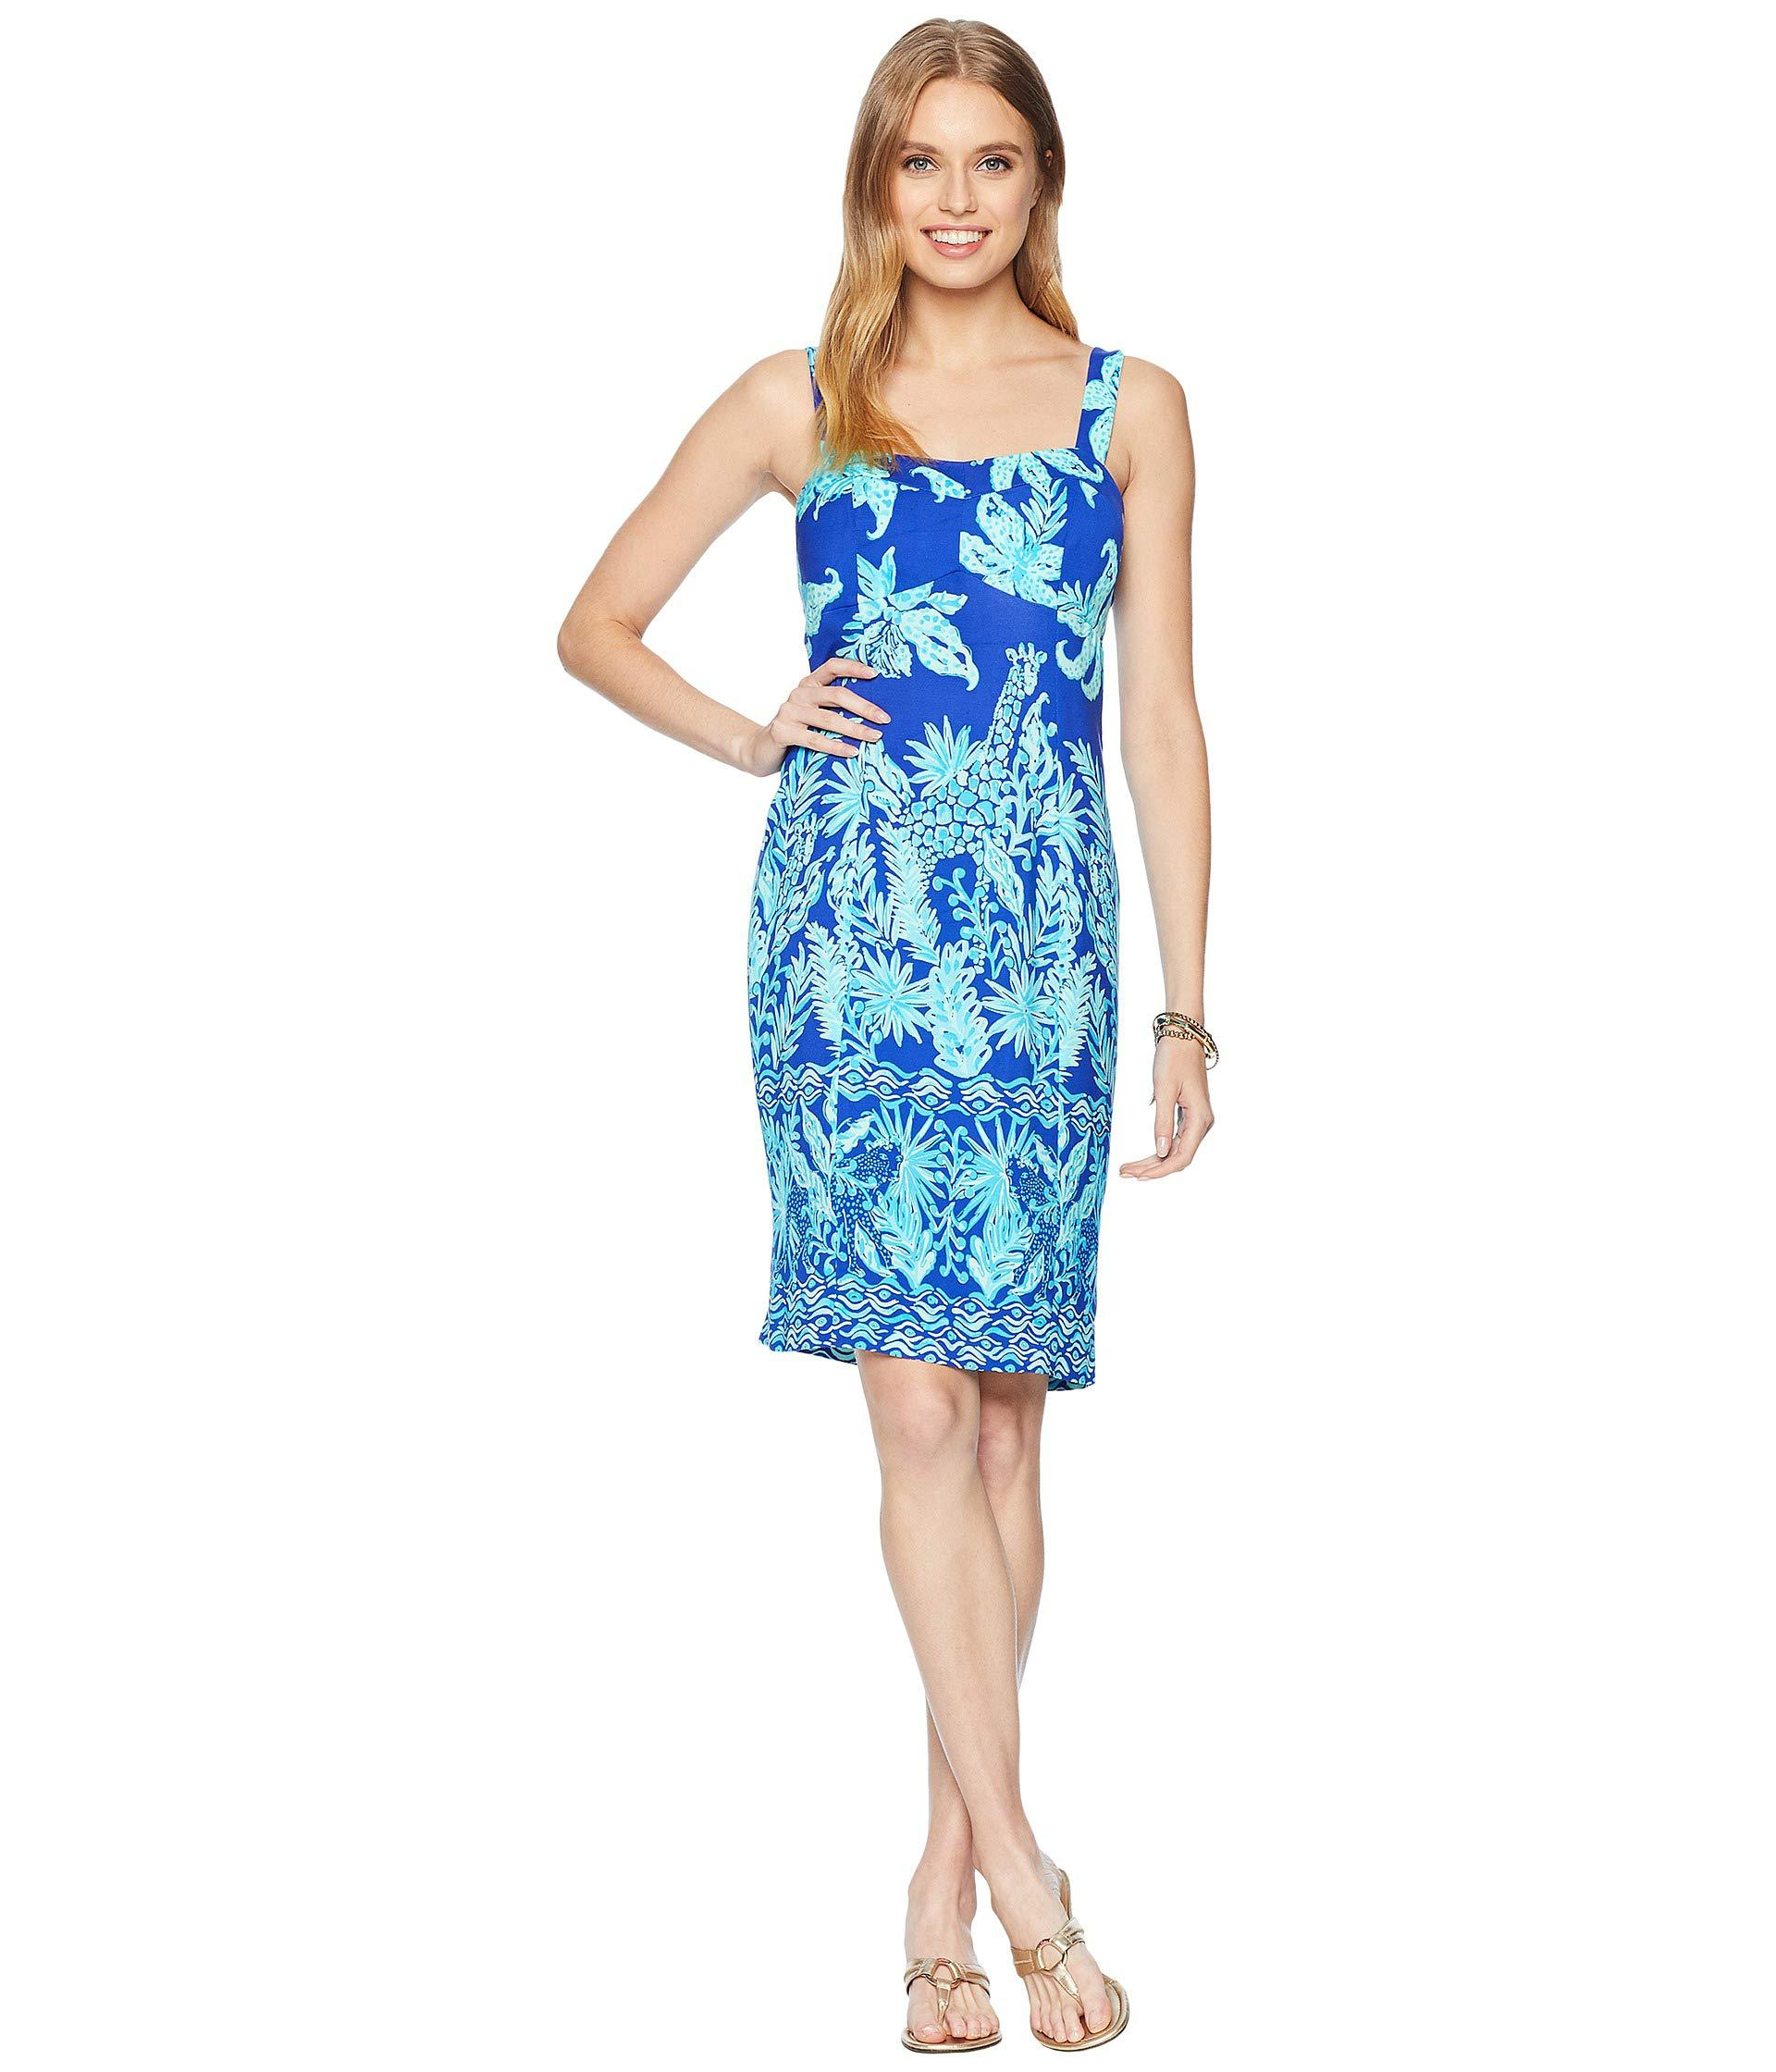 a995252ee057 Lyst - Lilly Pulitzer Annalee Stretch Dress (royal Purple Jungle ...